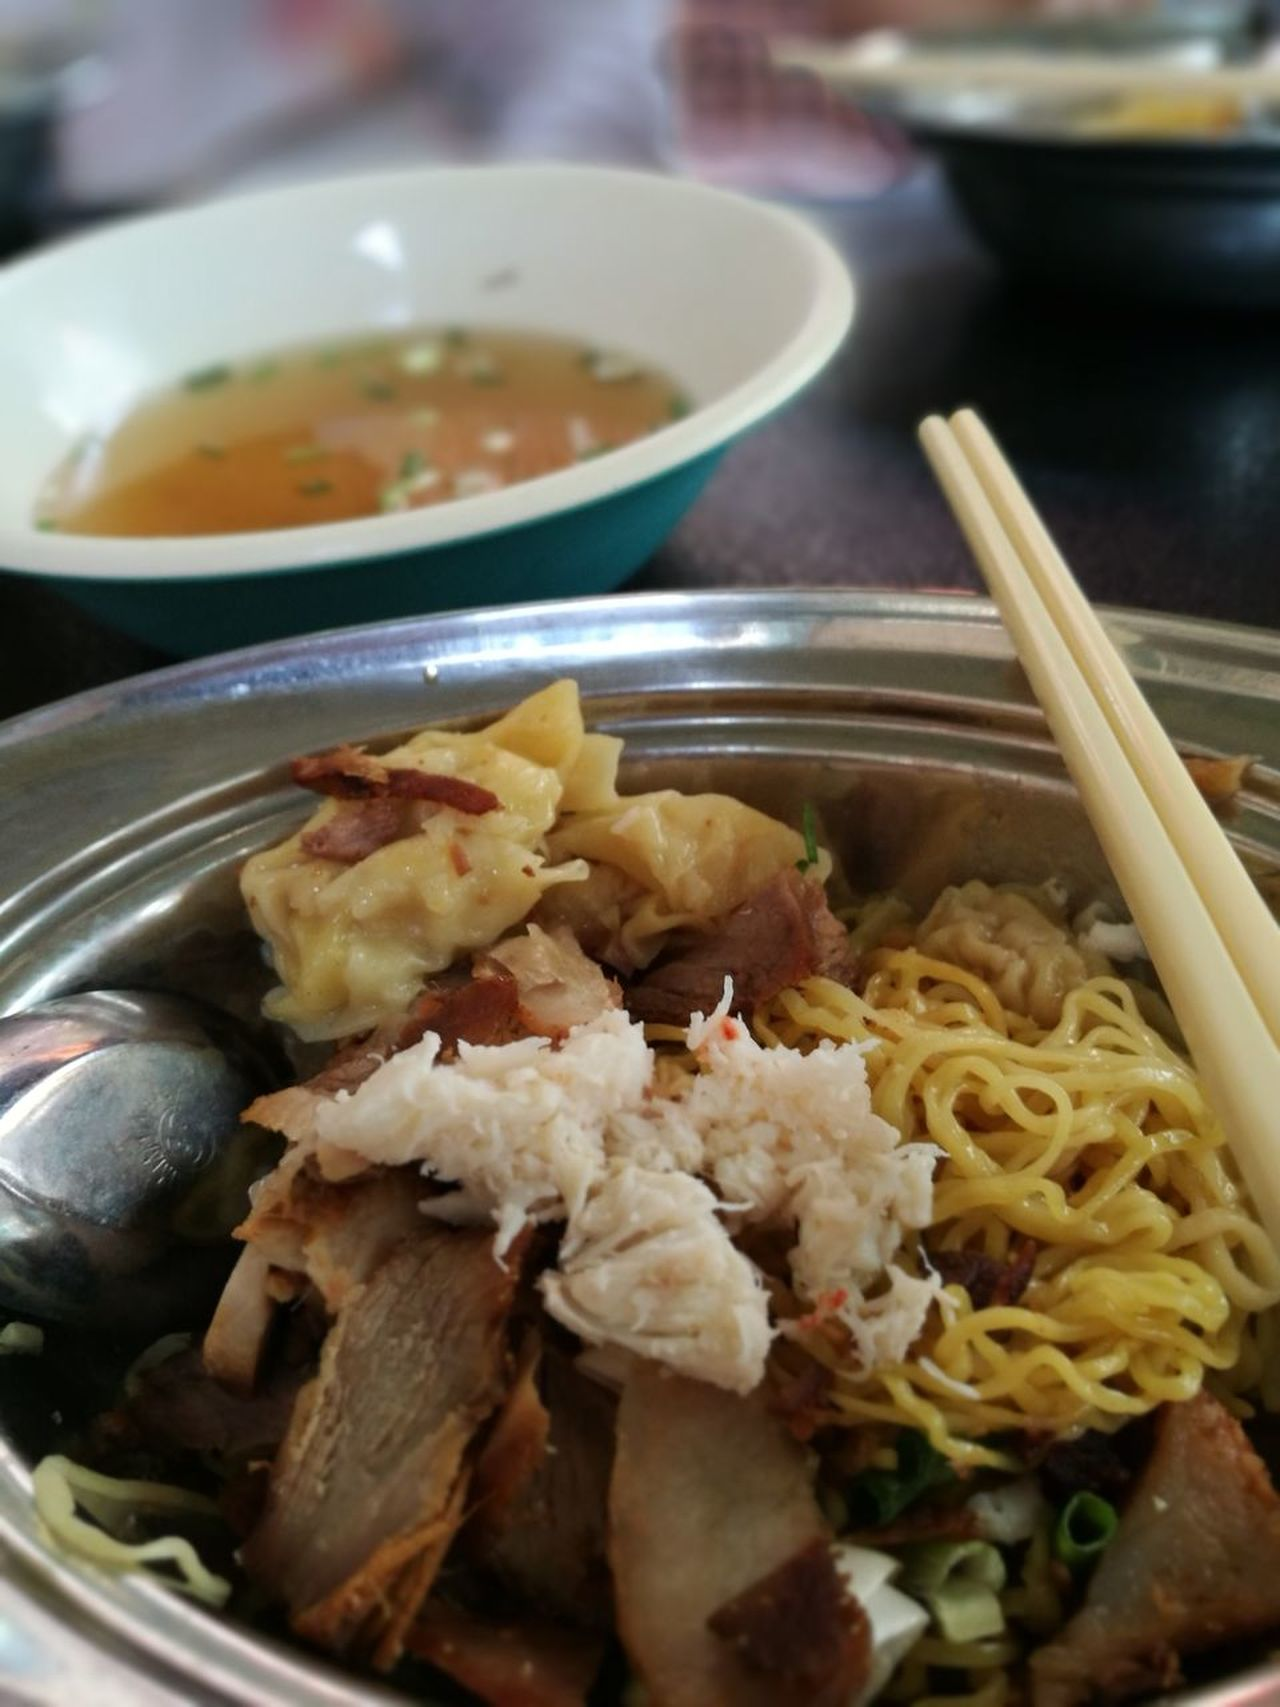 Chinese Food Chopsticks Food Soup Bowl Food And Drink Ready-to-eat Noodles Pork Meal Meat Dumpling  Healthy Eating No People Plate Indoors  Freshness Close-up Day Noodle Noodletime🍝